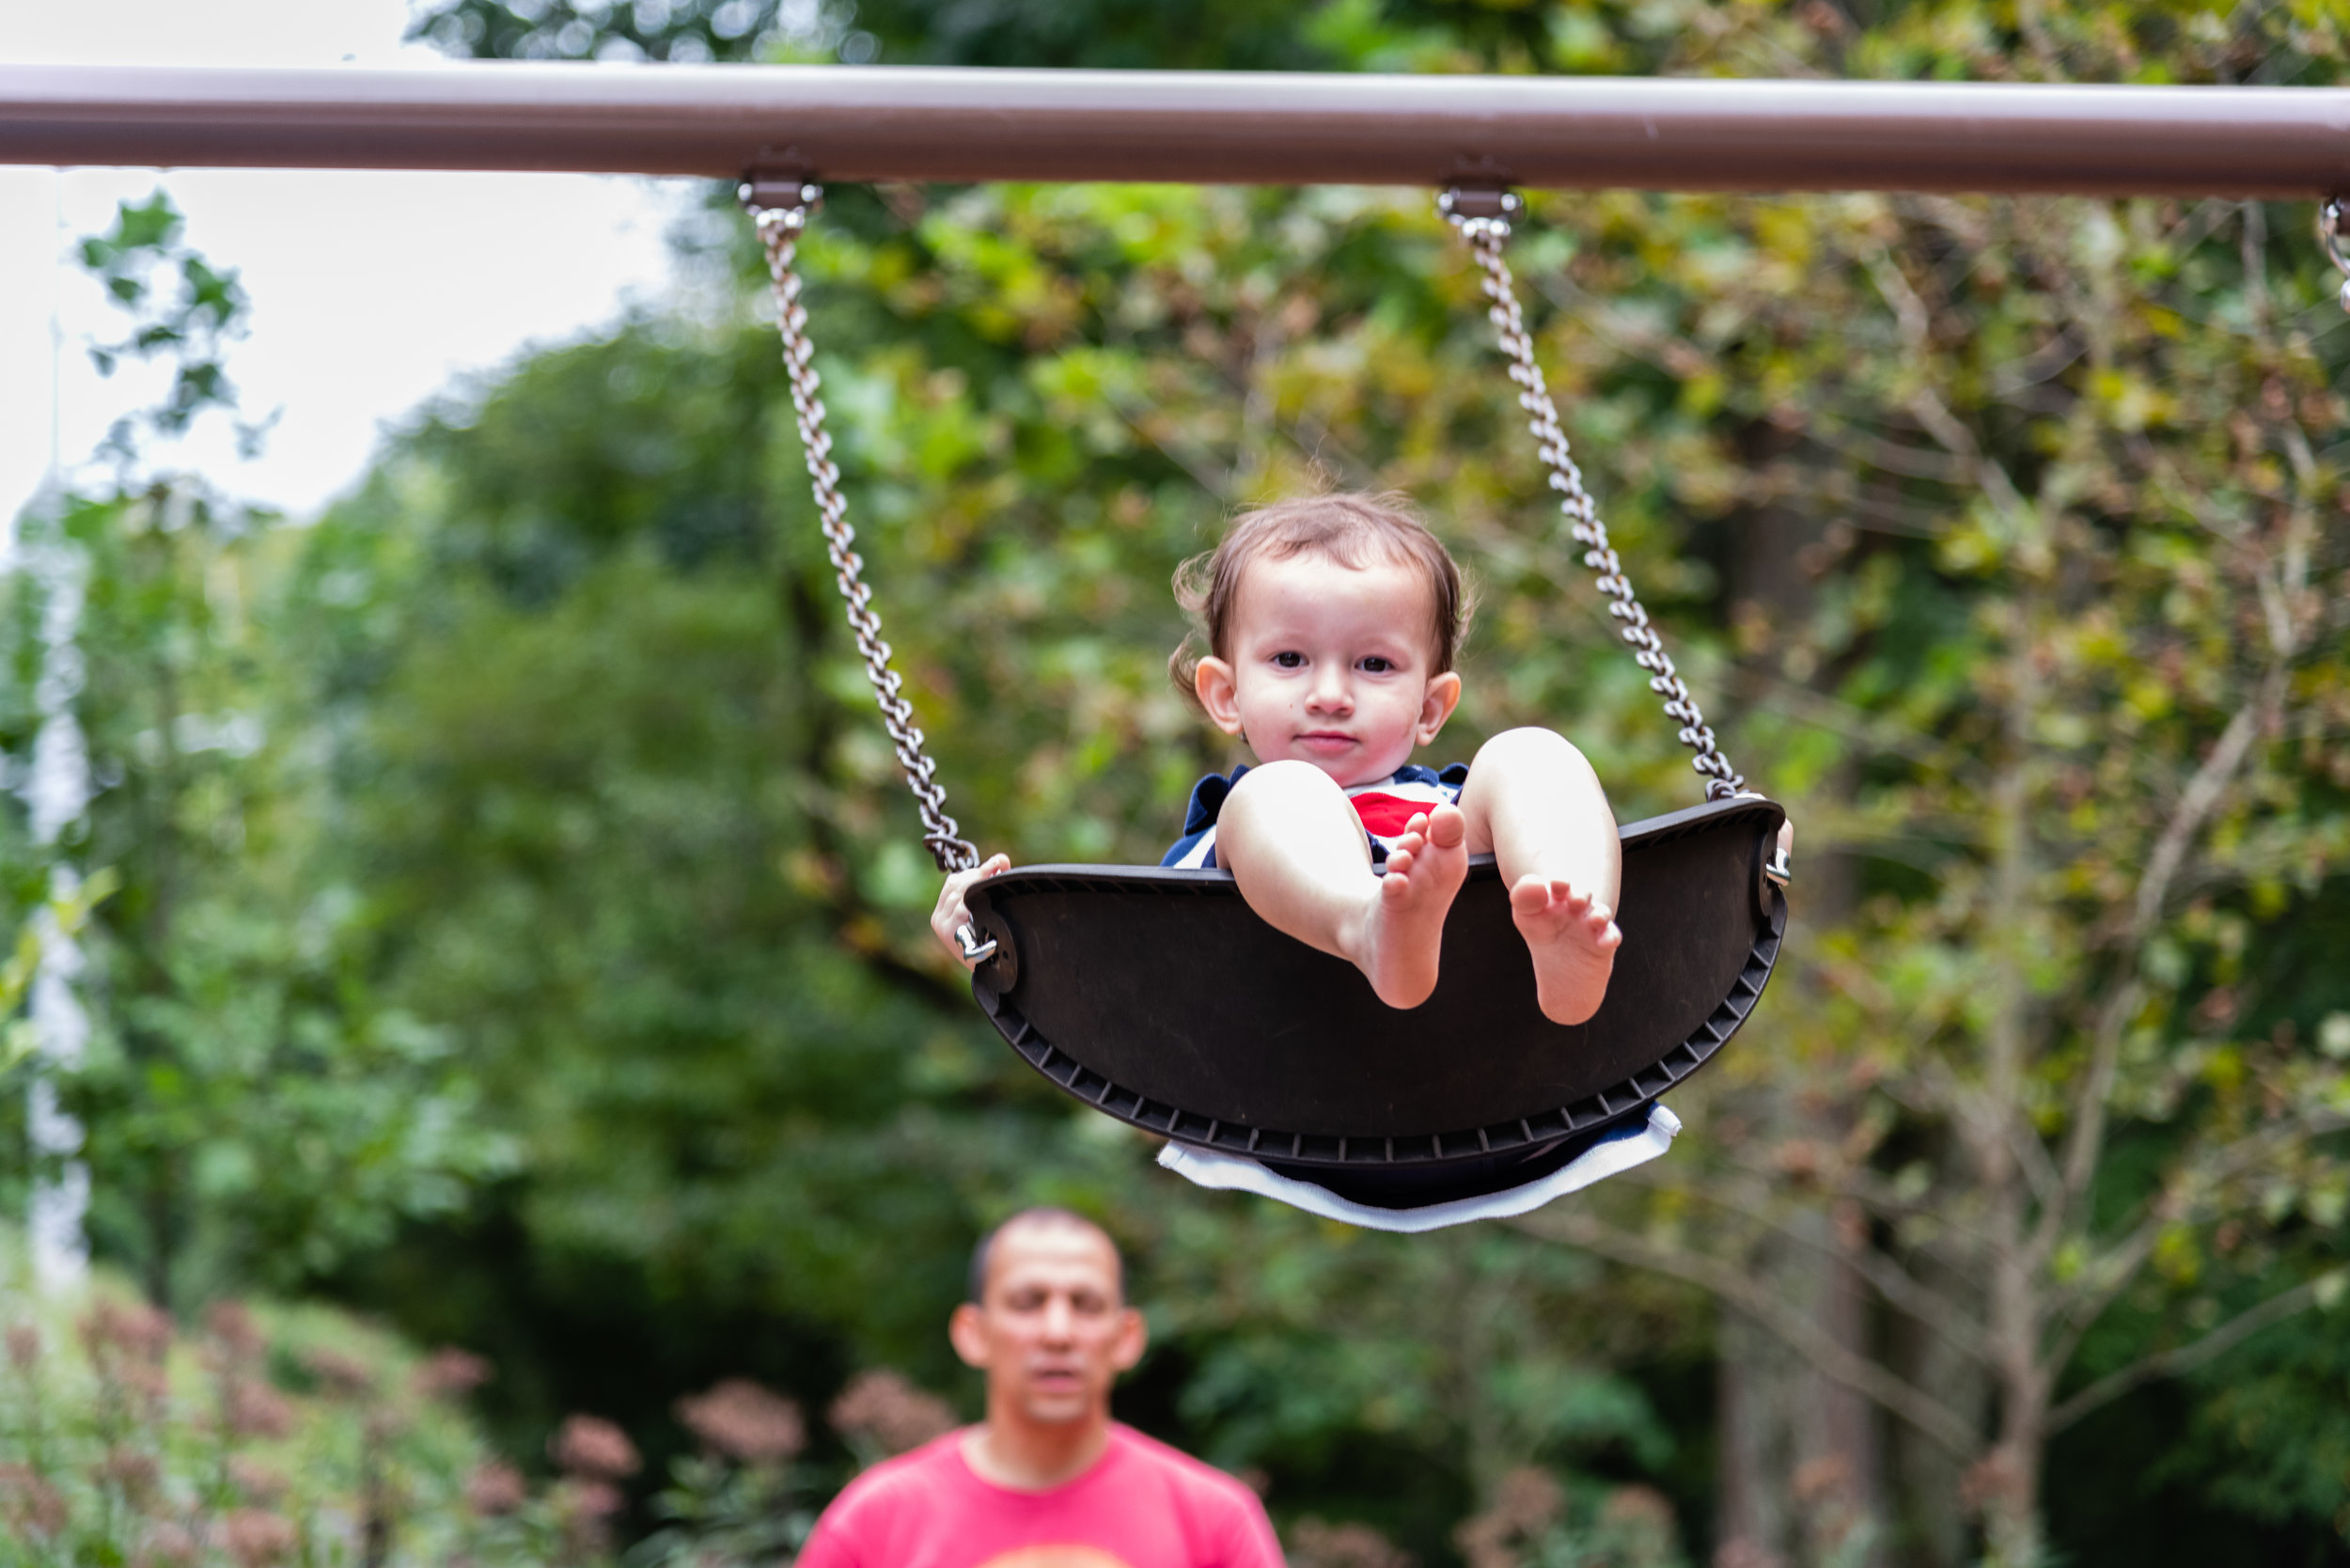 Toddler swinging on Northern Virginia playground with dad in background by Family Photographer Nicole Sanchez